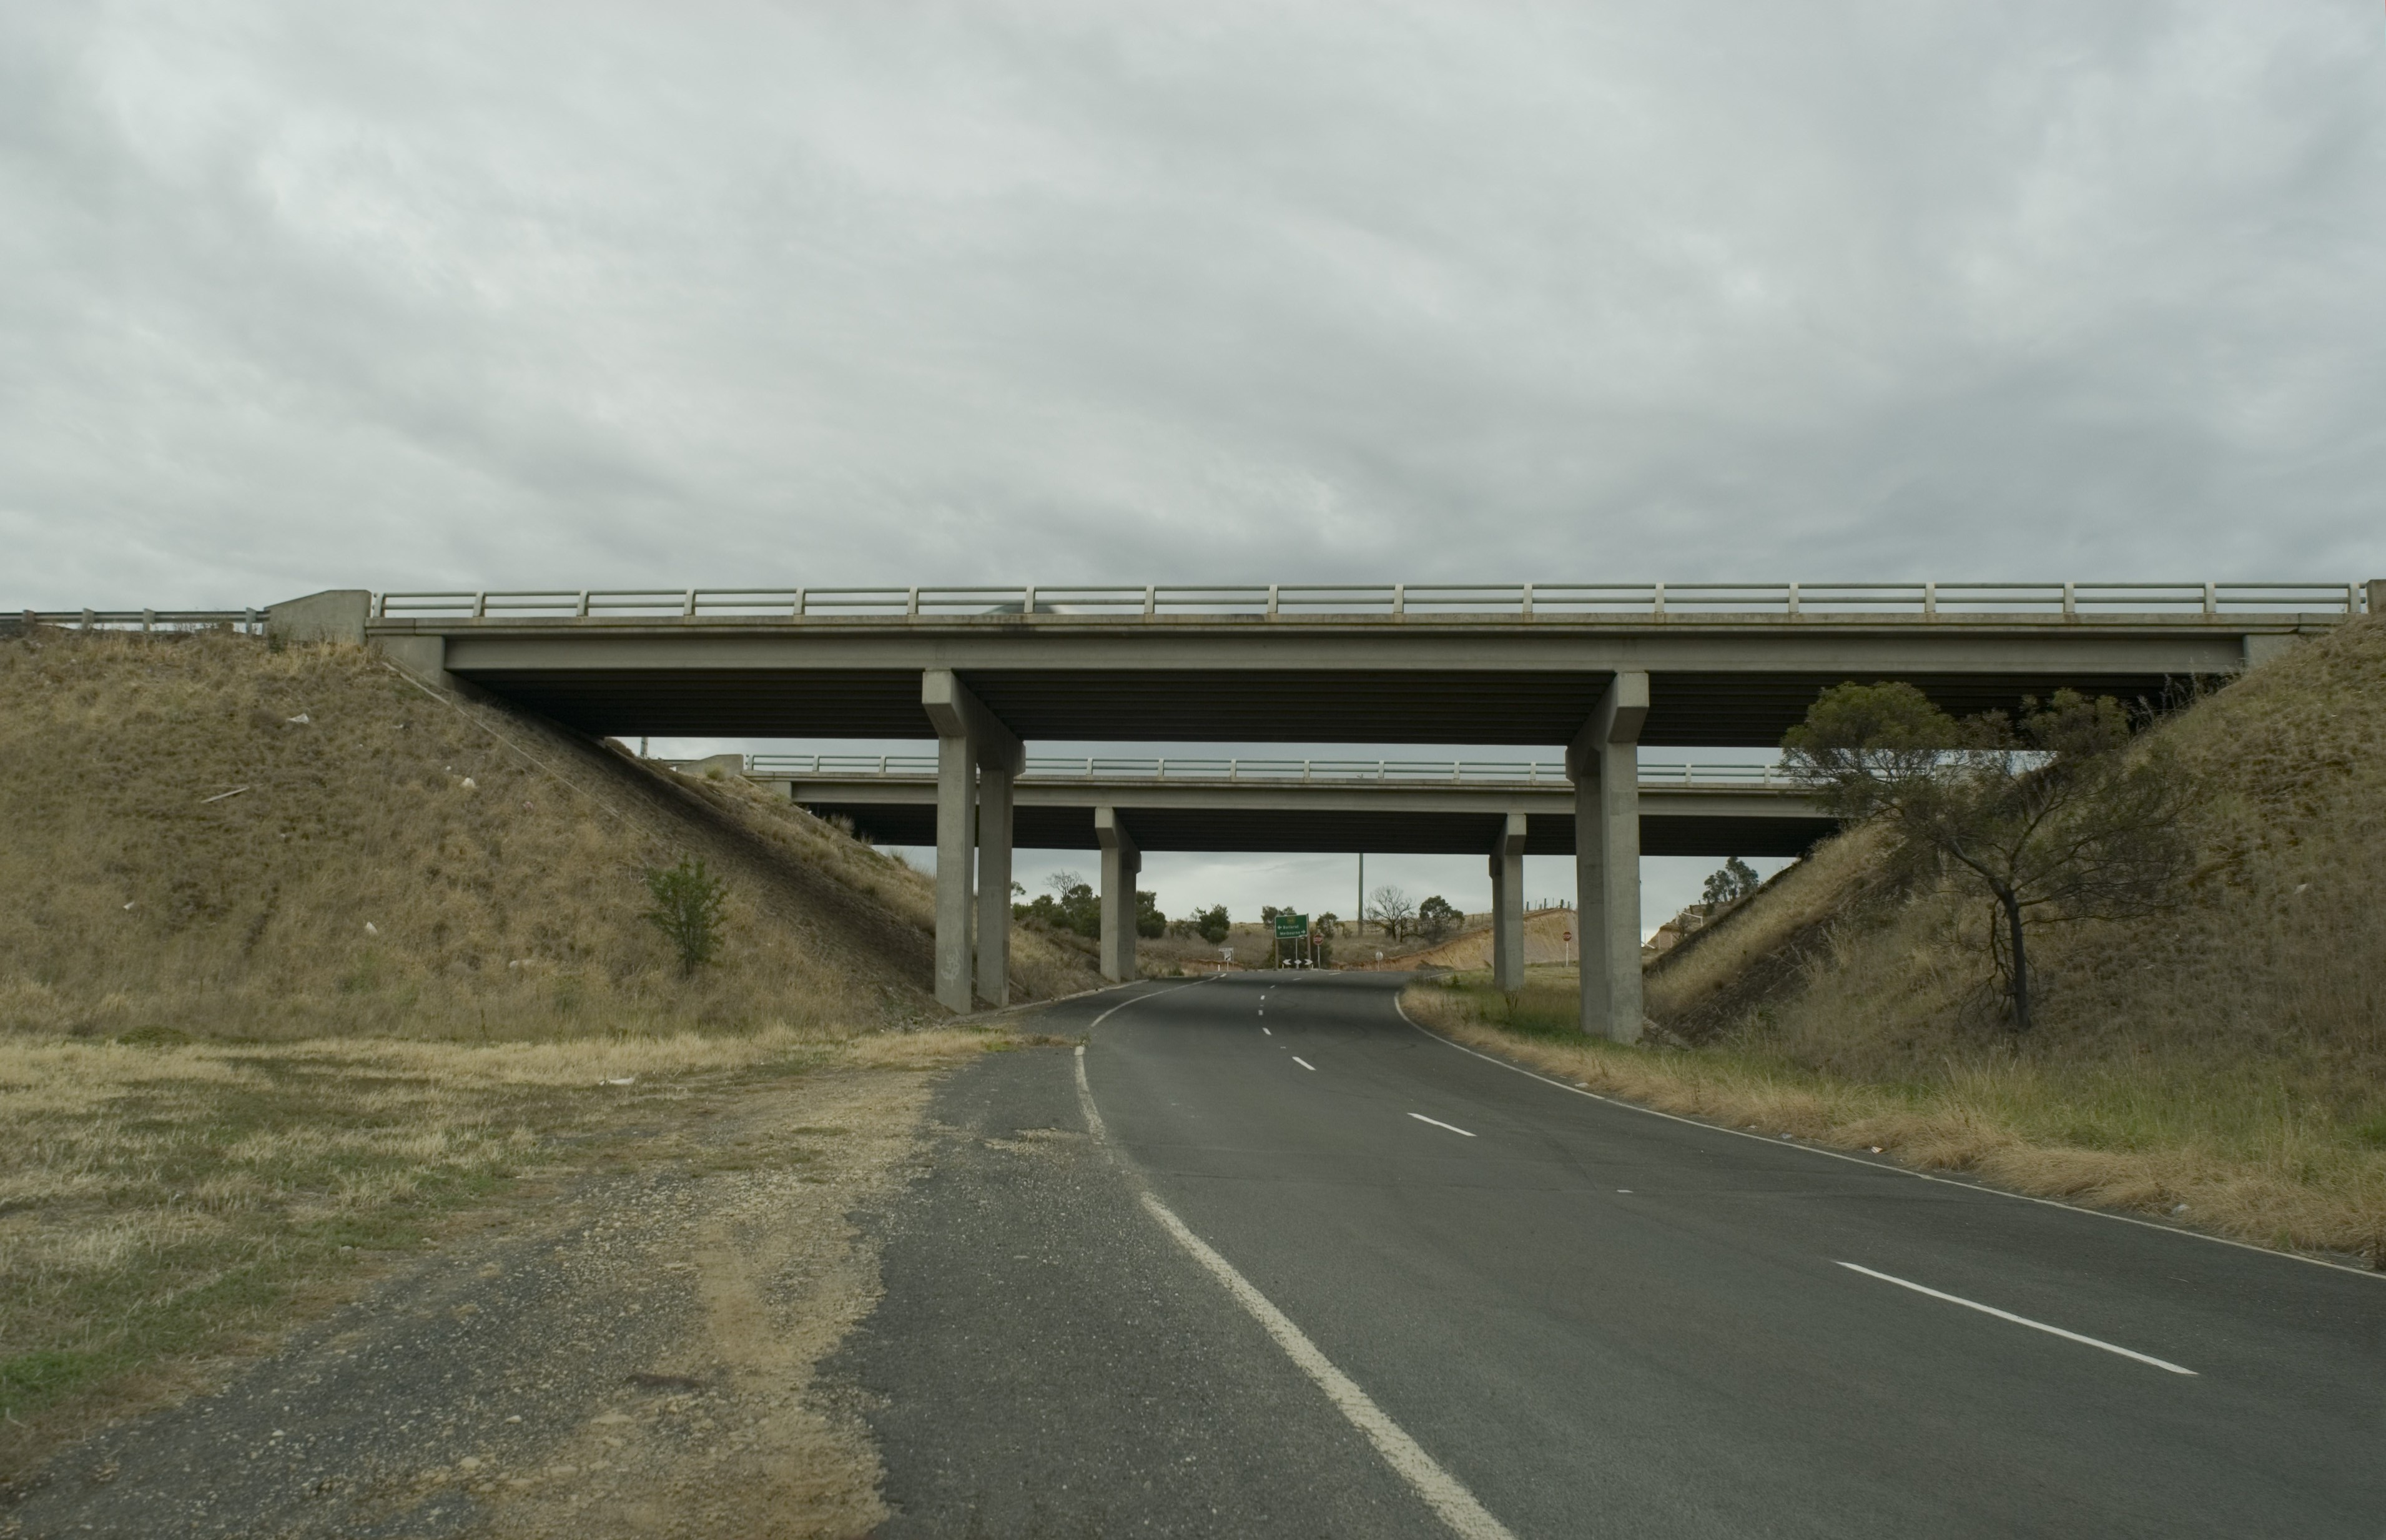 a concrete freeway overpass low key